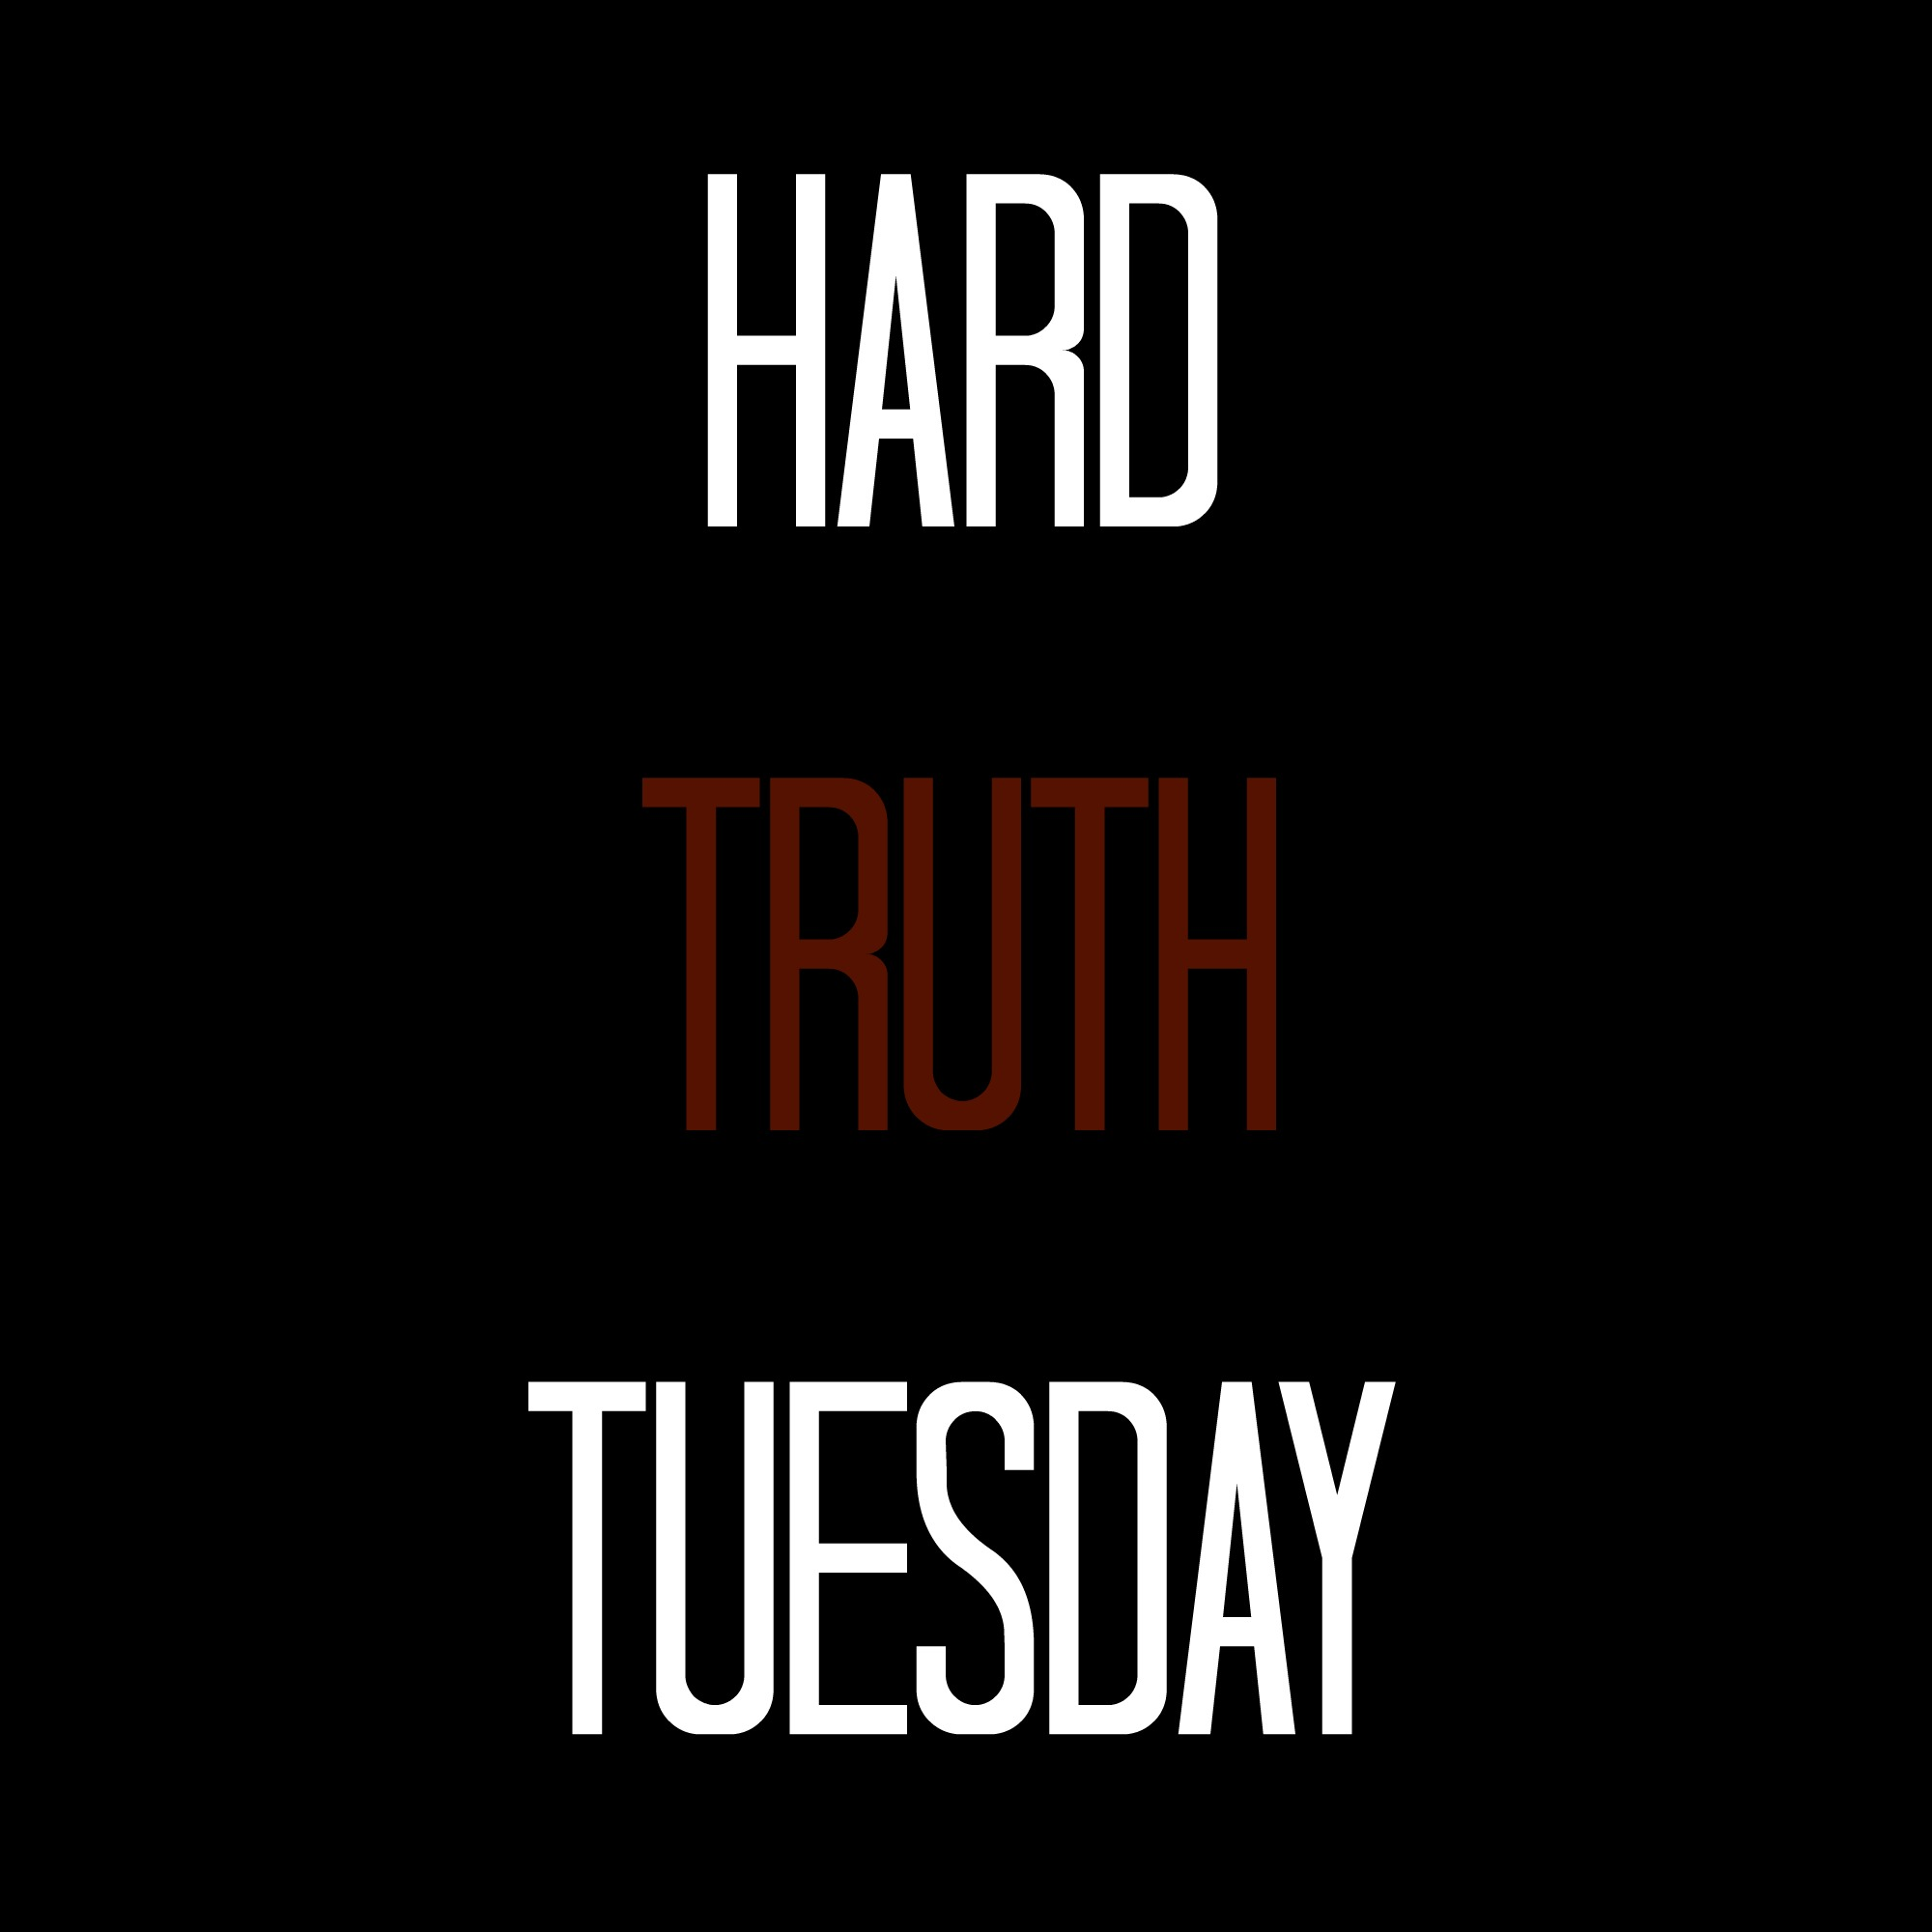 Hard Truth Tuesday: I Hate my Mother-in-Law